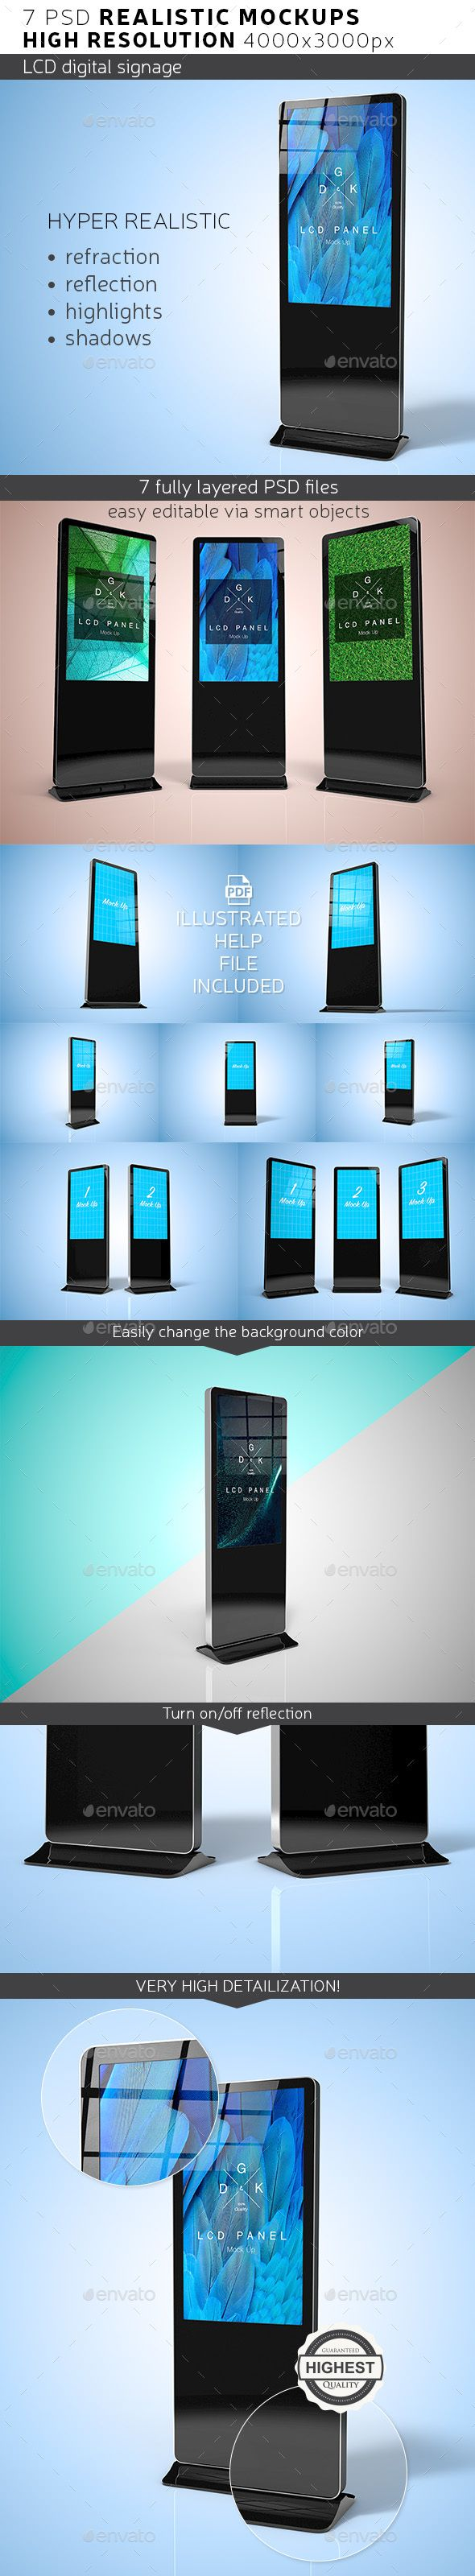 LCD Digital Signage Mockup — Photoshop PSD #show #mock-up • Available here → https://graphicriver.net/item/lcd-digital-signage-mockup/17741013?ref=pxcr